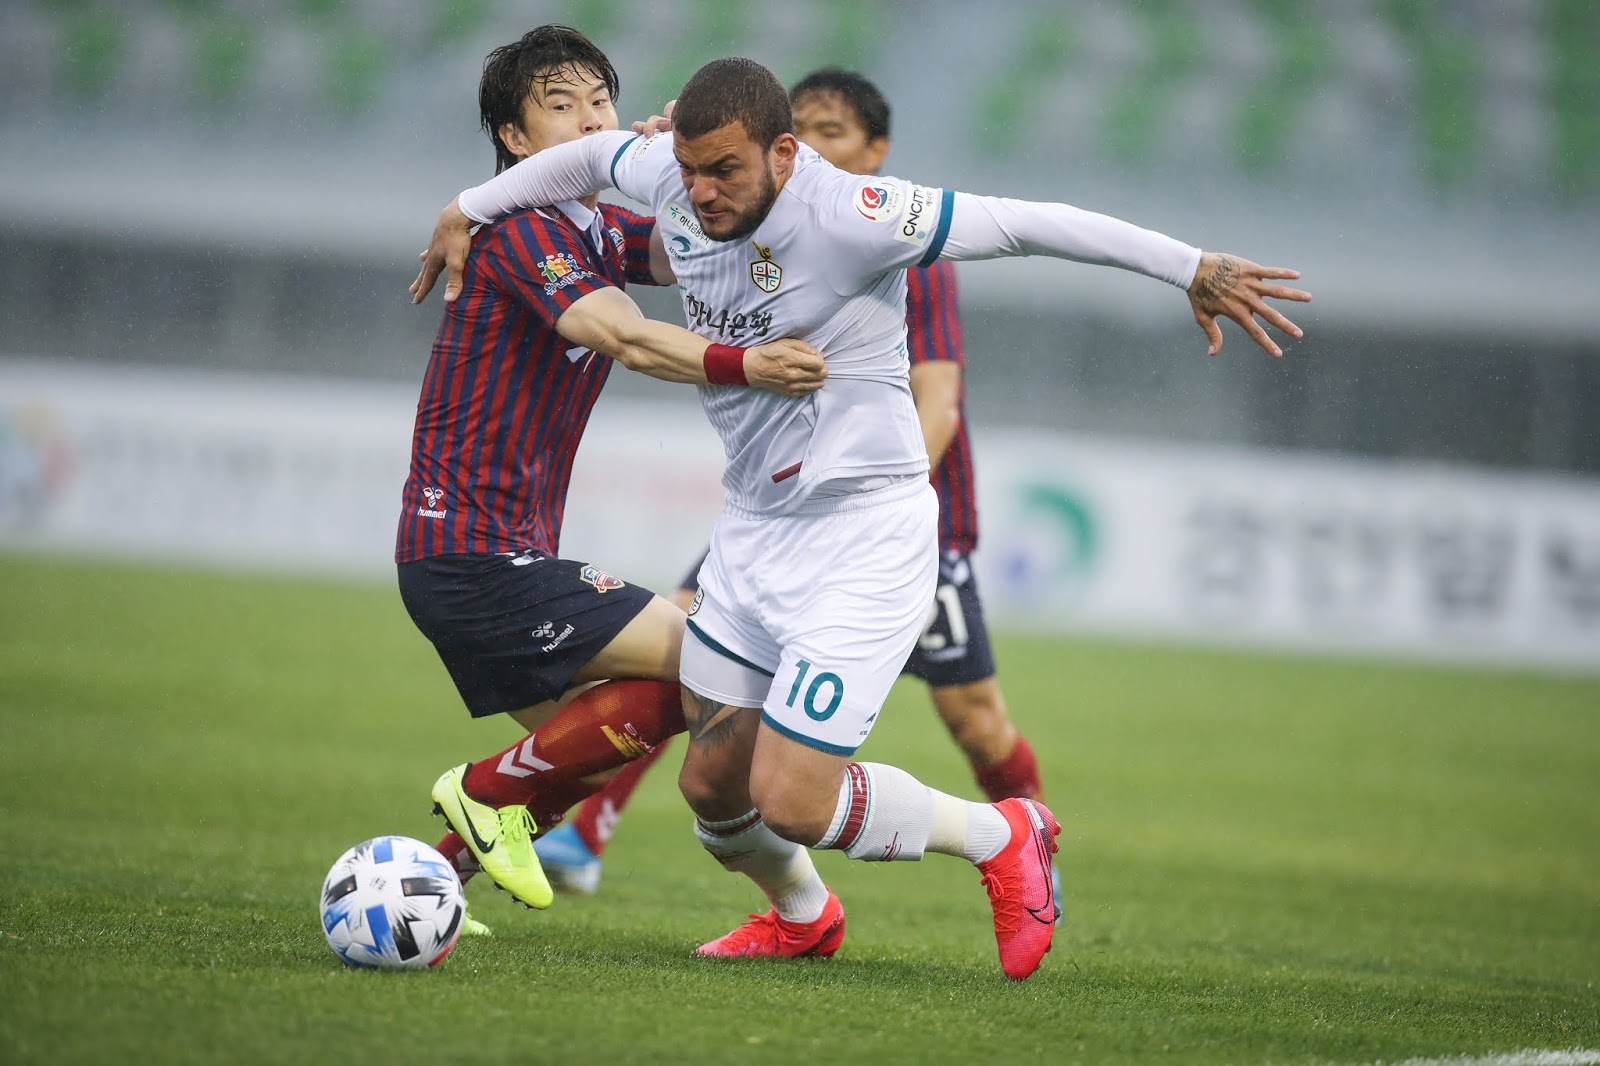 Preview: Daejeon Hana Citizen vs Suwon FC K League 2 Round 12